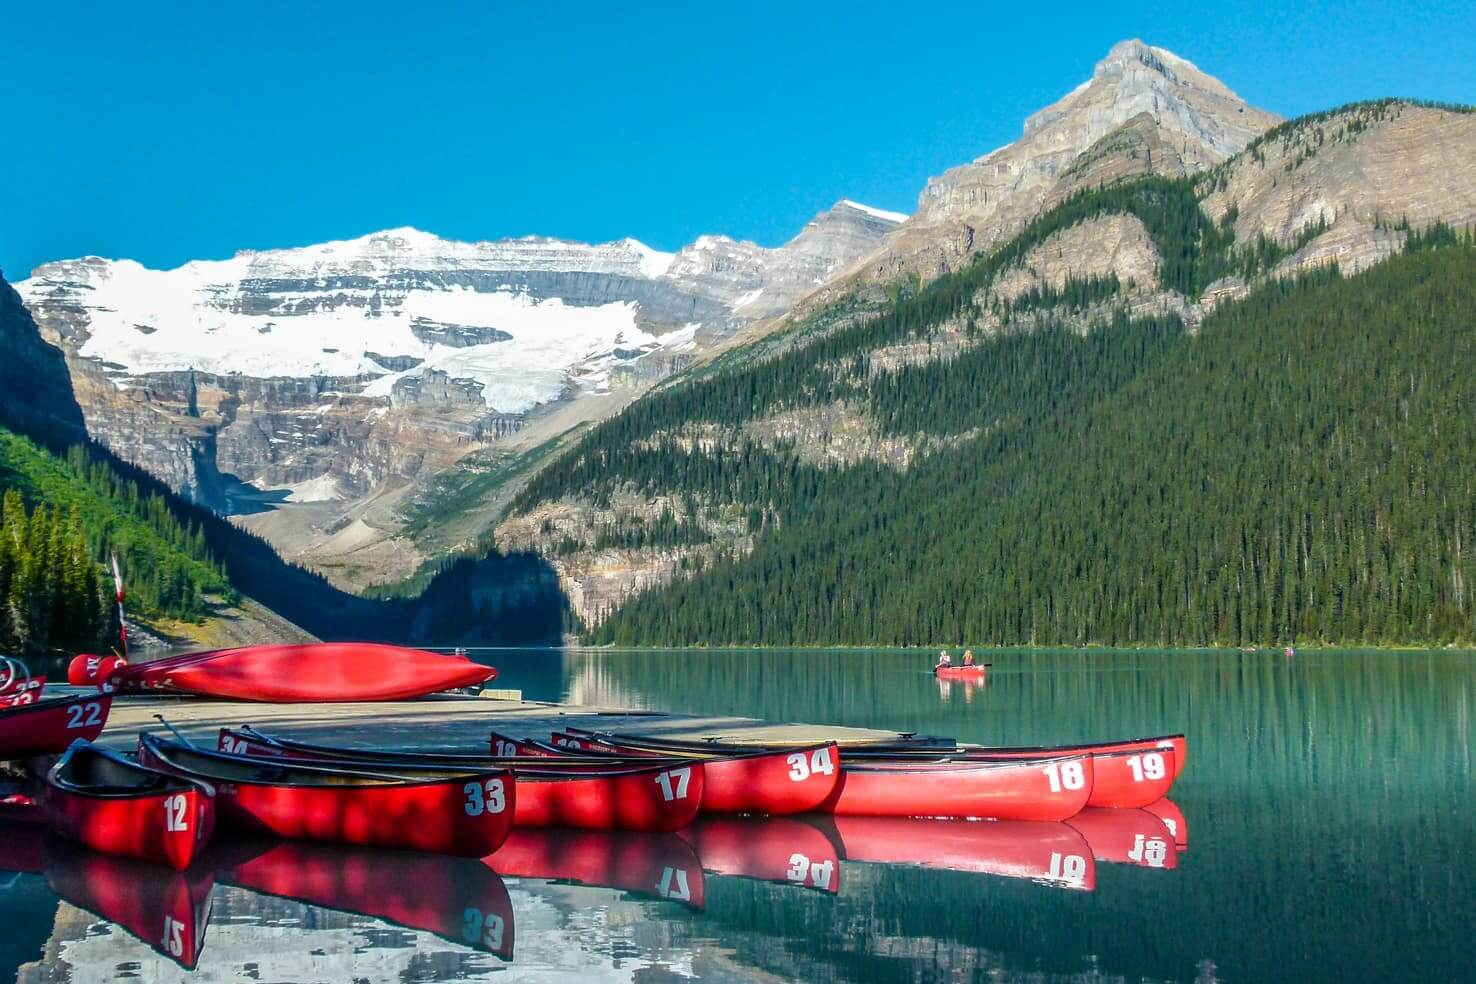 Banff hikes - 20 best hikes in Banff National Park, Canada - Lake Louise